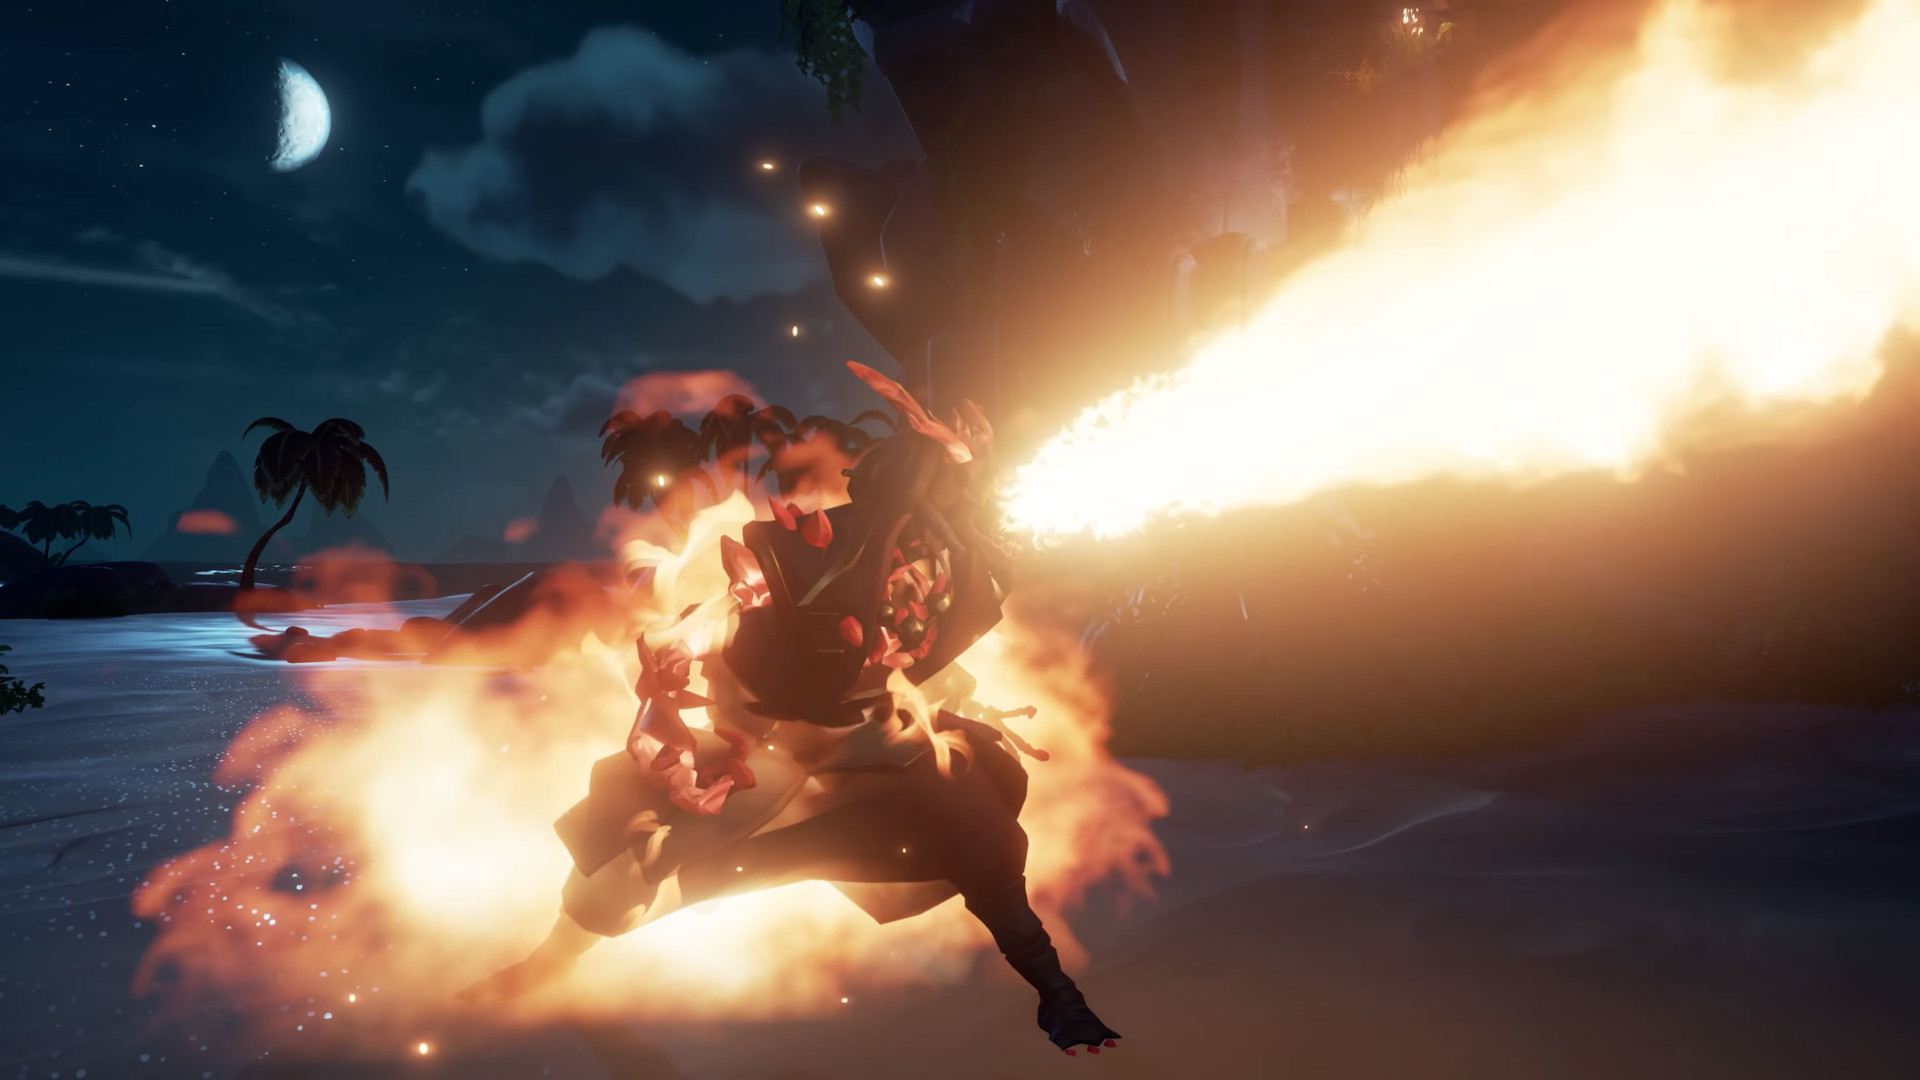 Sea-of-thieves-ashen-winds-gameplay-2.jpg